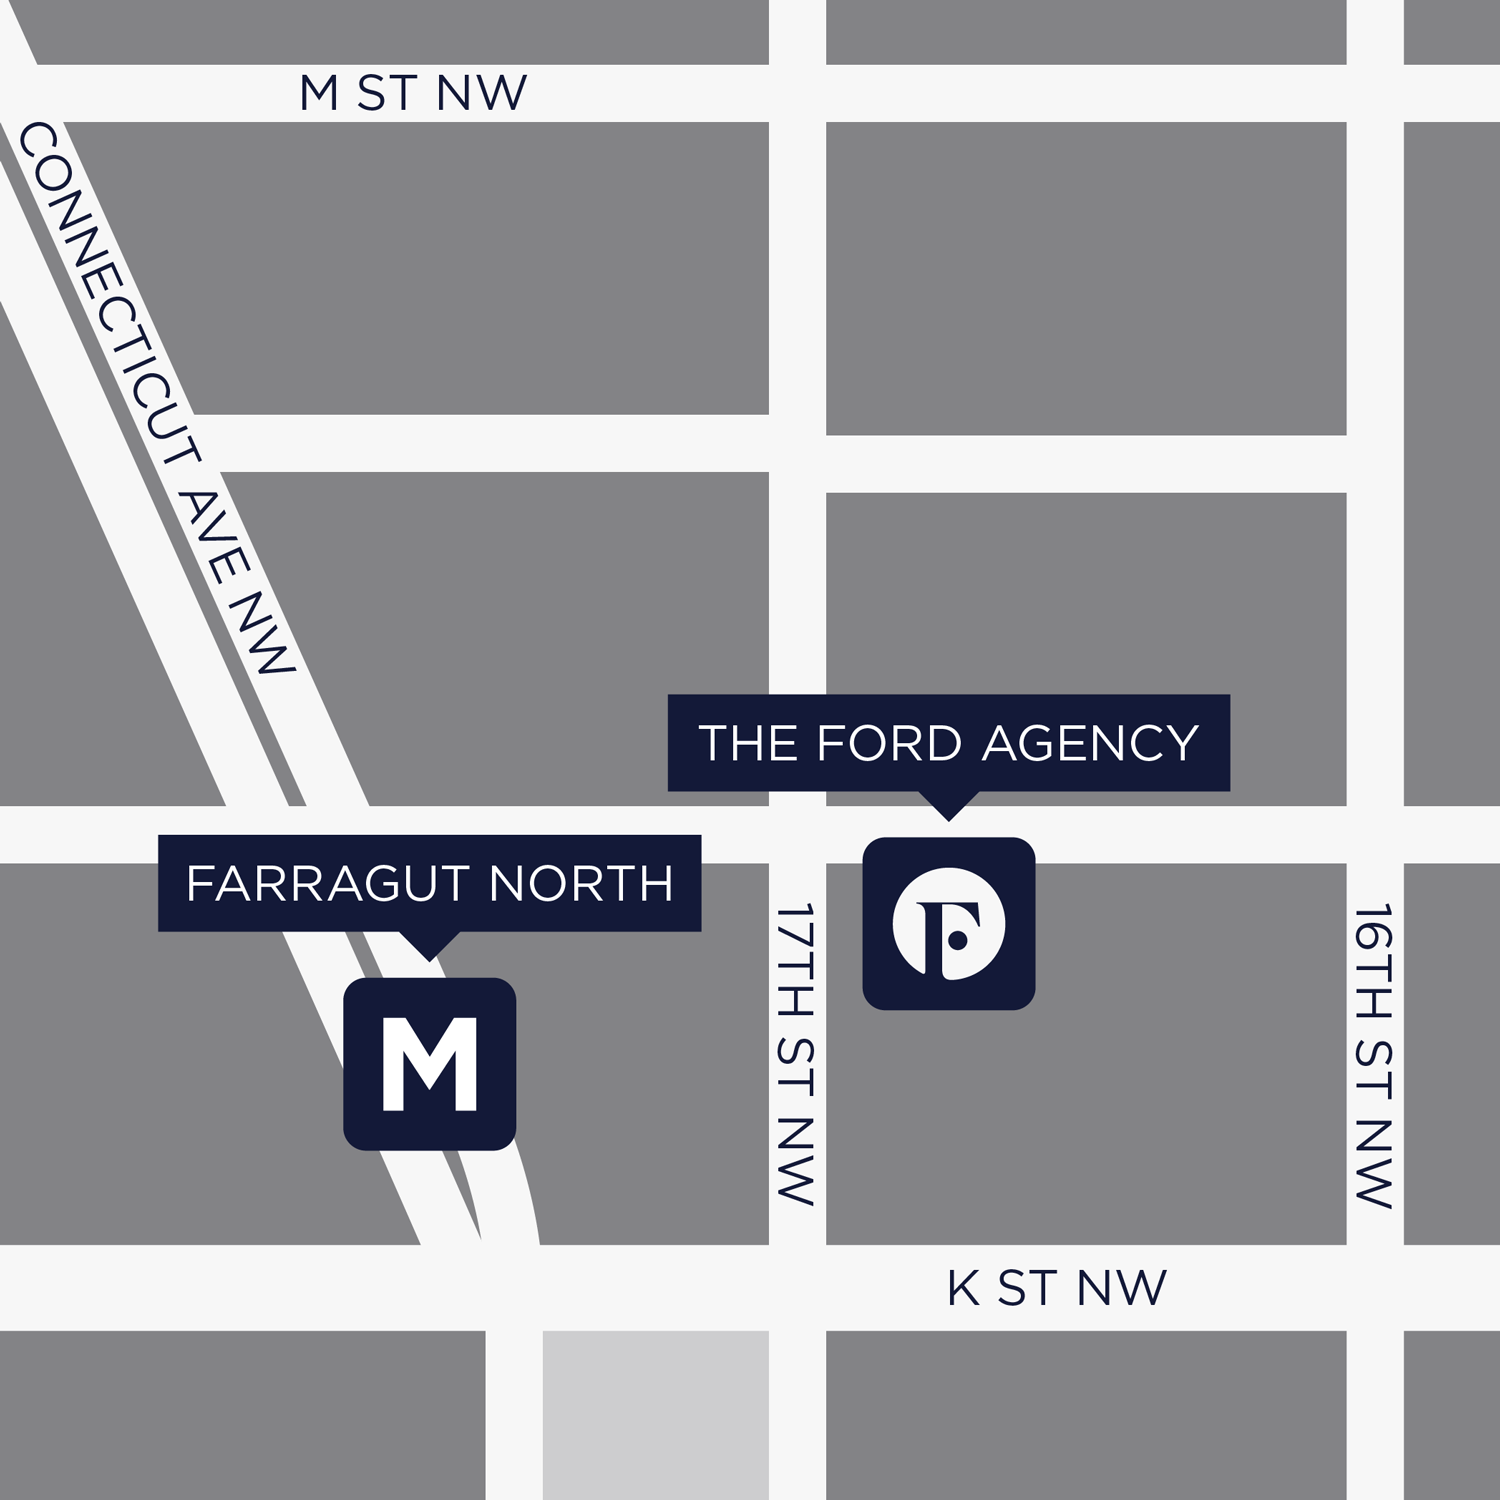 Ford Agency Location | 1660 L Street NW, Suite 608 Washington, DC 20036